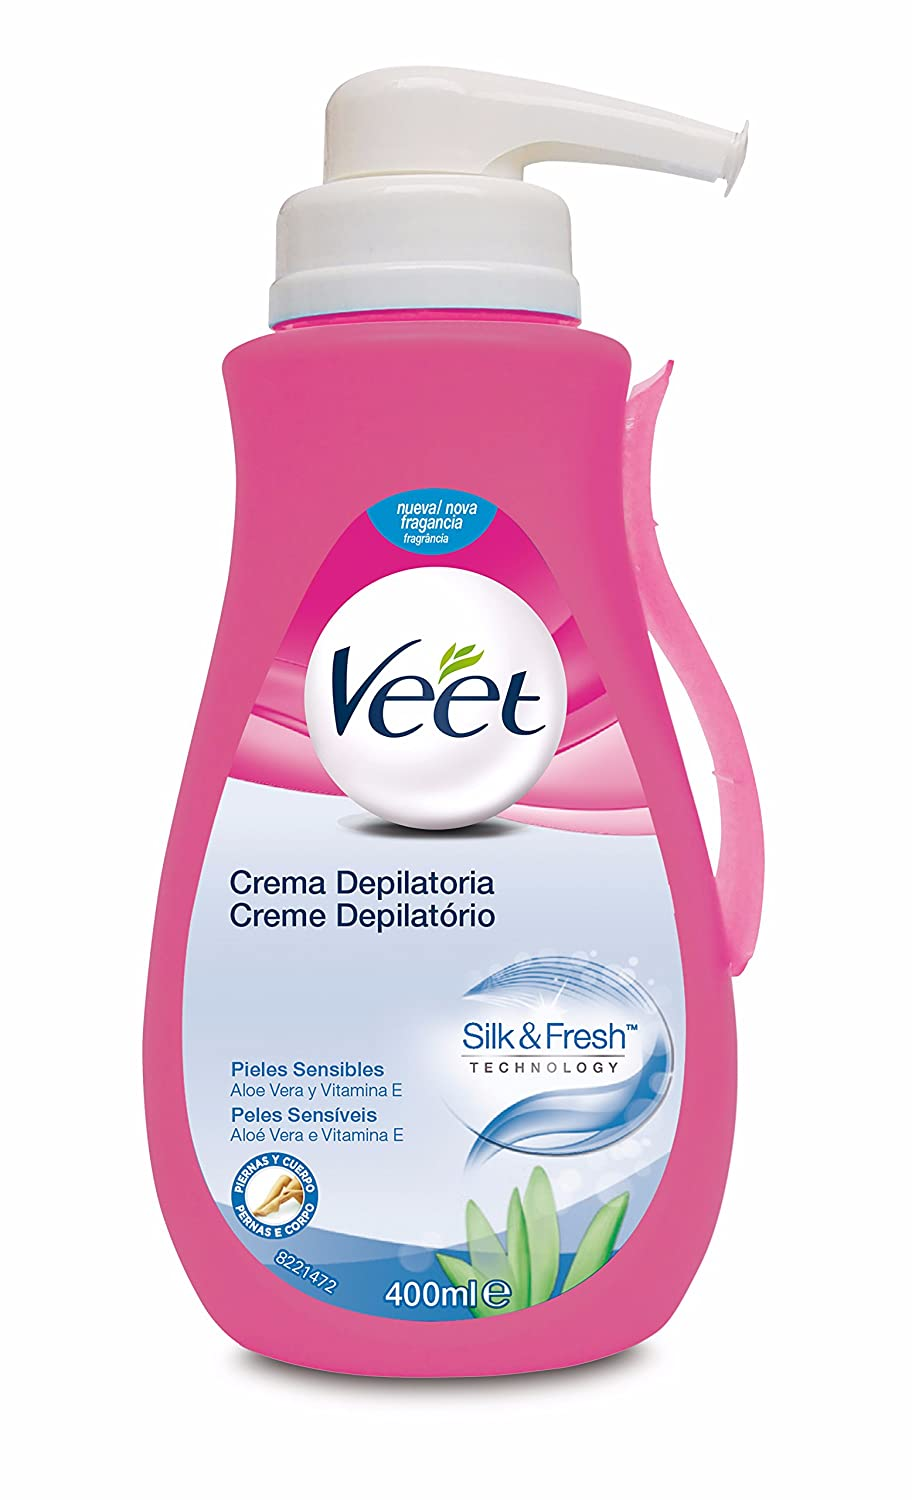 Veet Crema Depilatoria - con dosificador, Piel Sensible, 400ml: Amazon.es: Amazon Pantry